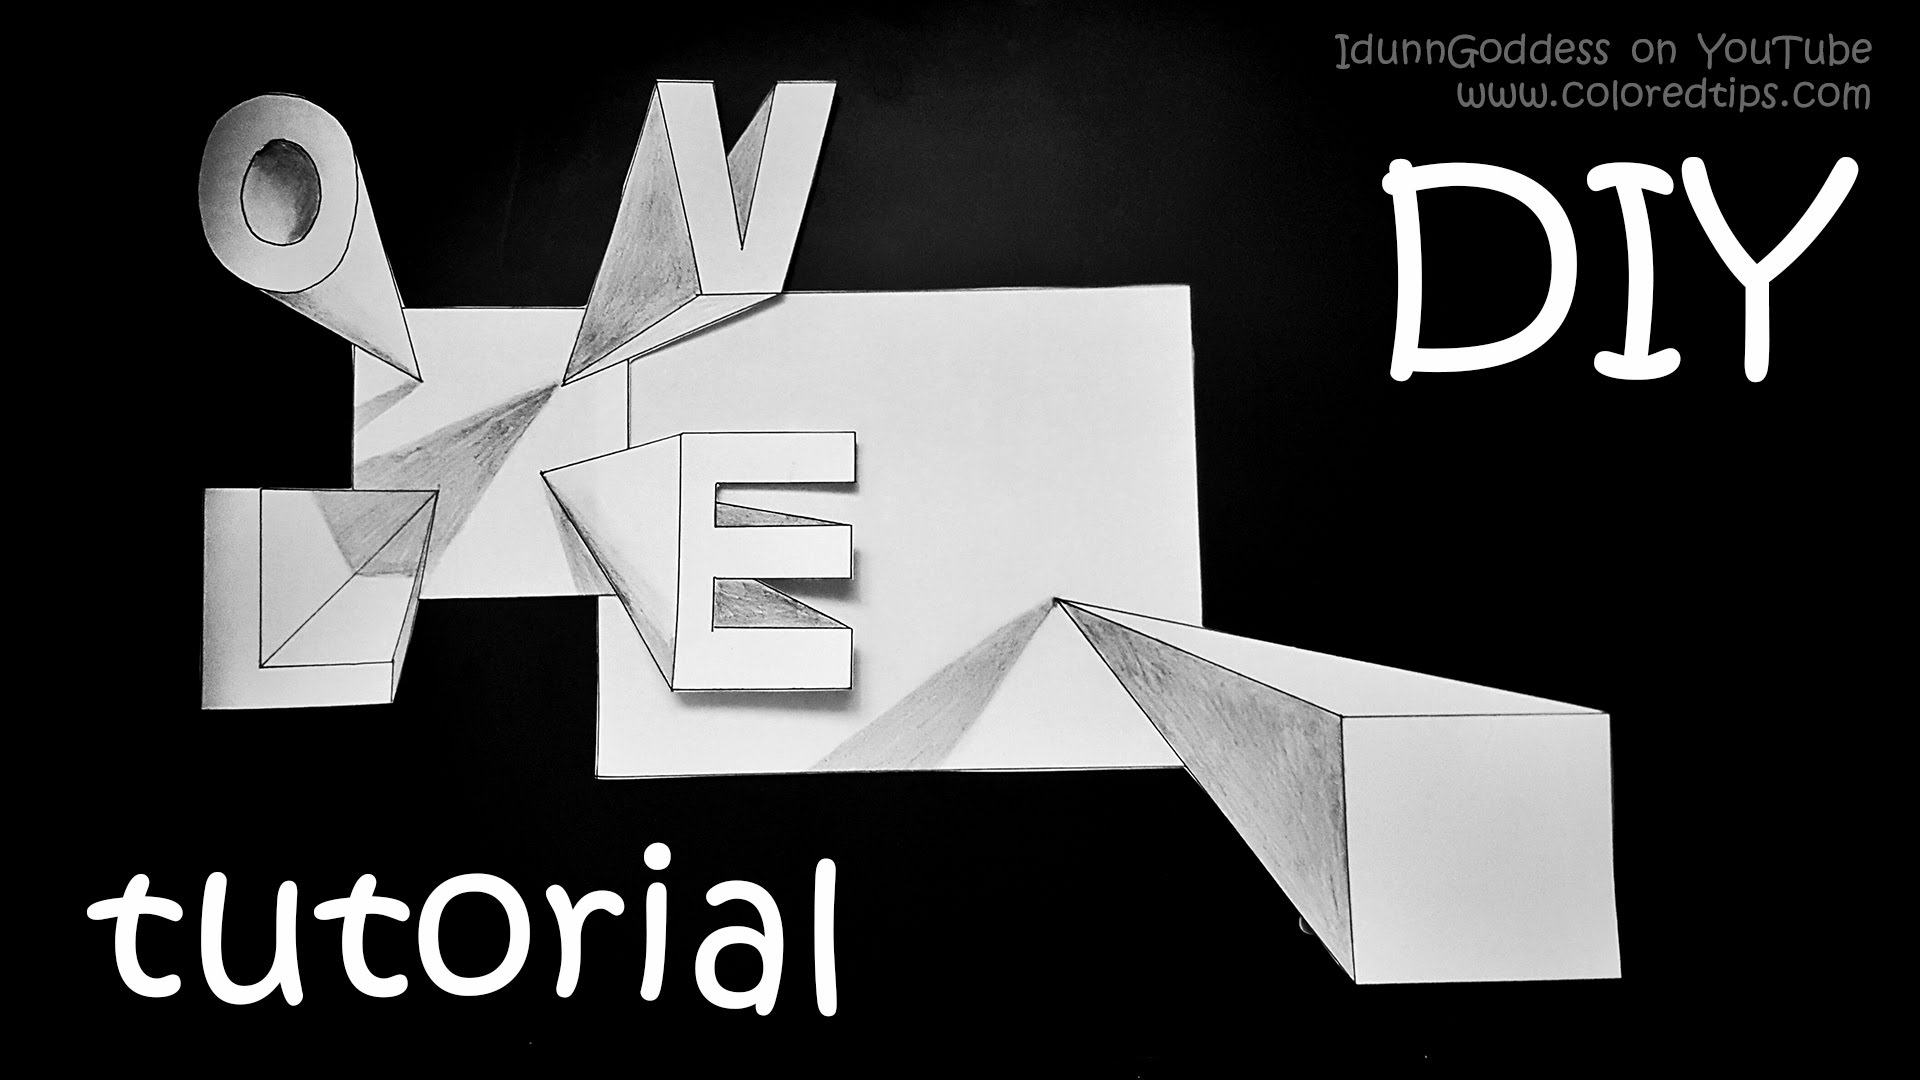 Drawn optical illusion cool word By YouTube To 3D Step